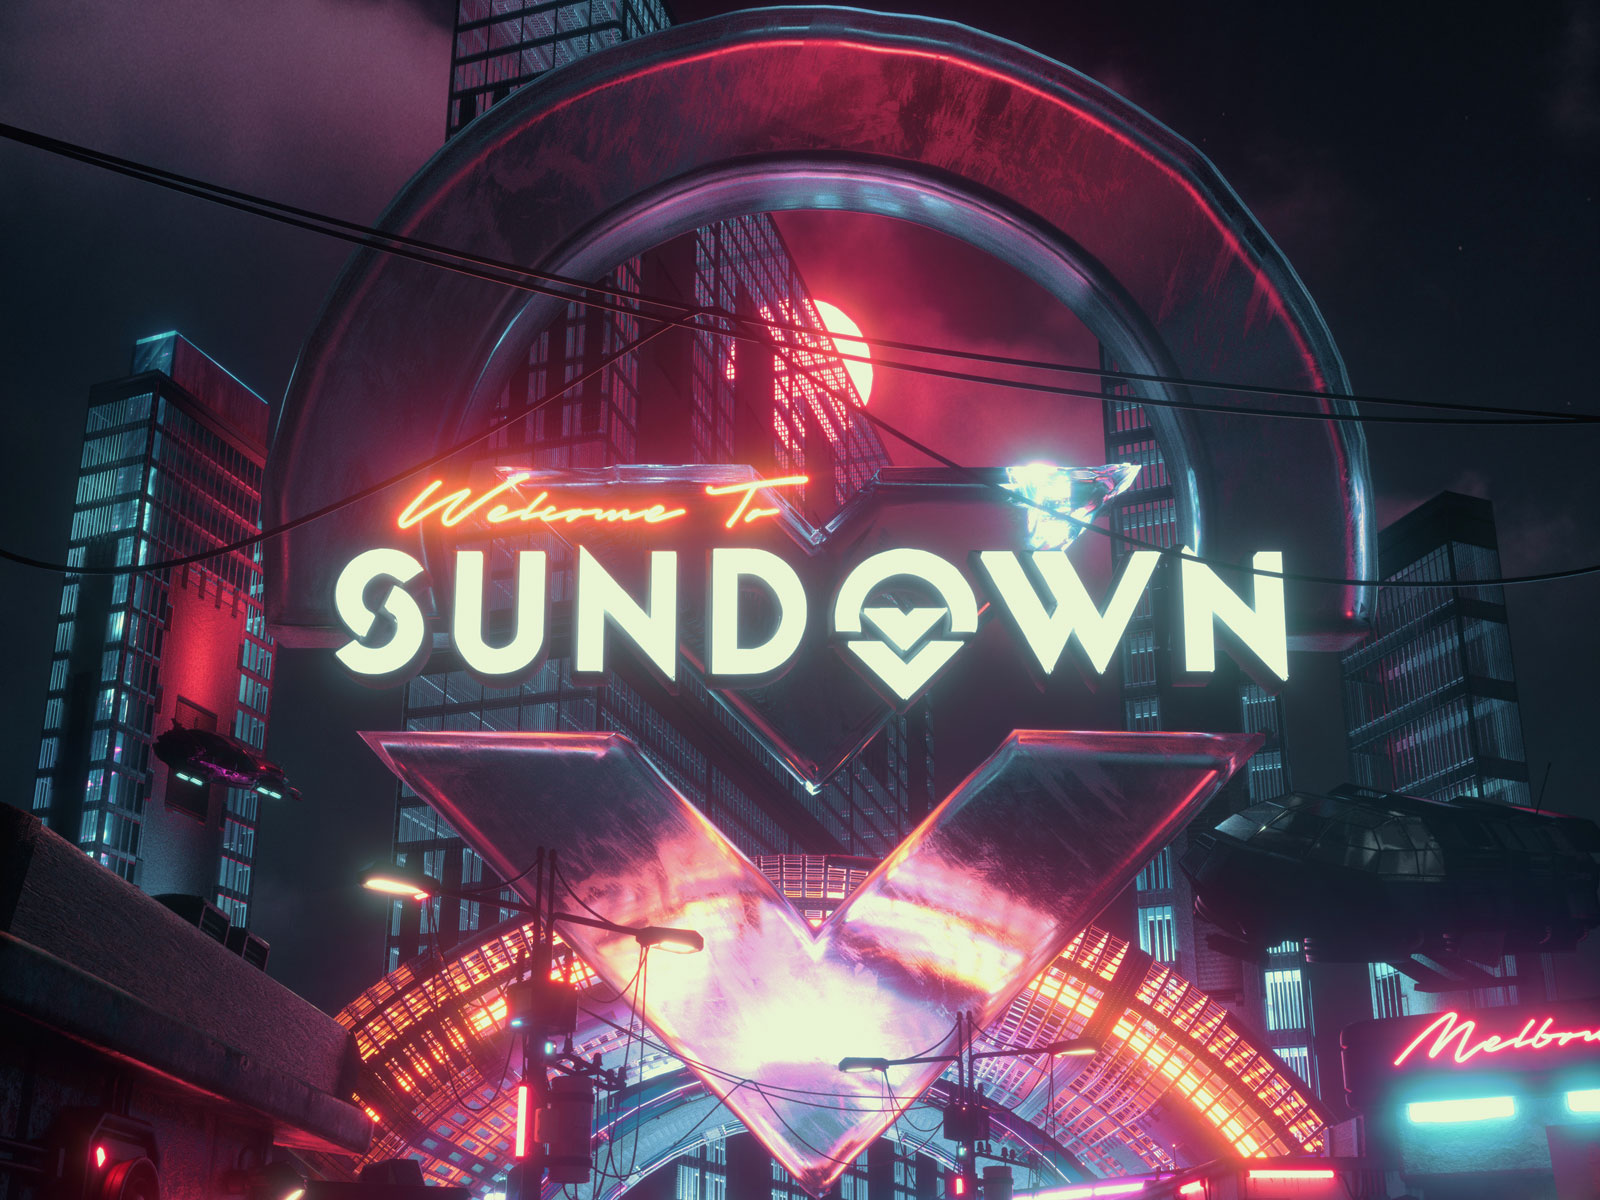 sundown-2020-festival-oz-edm-feature